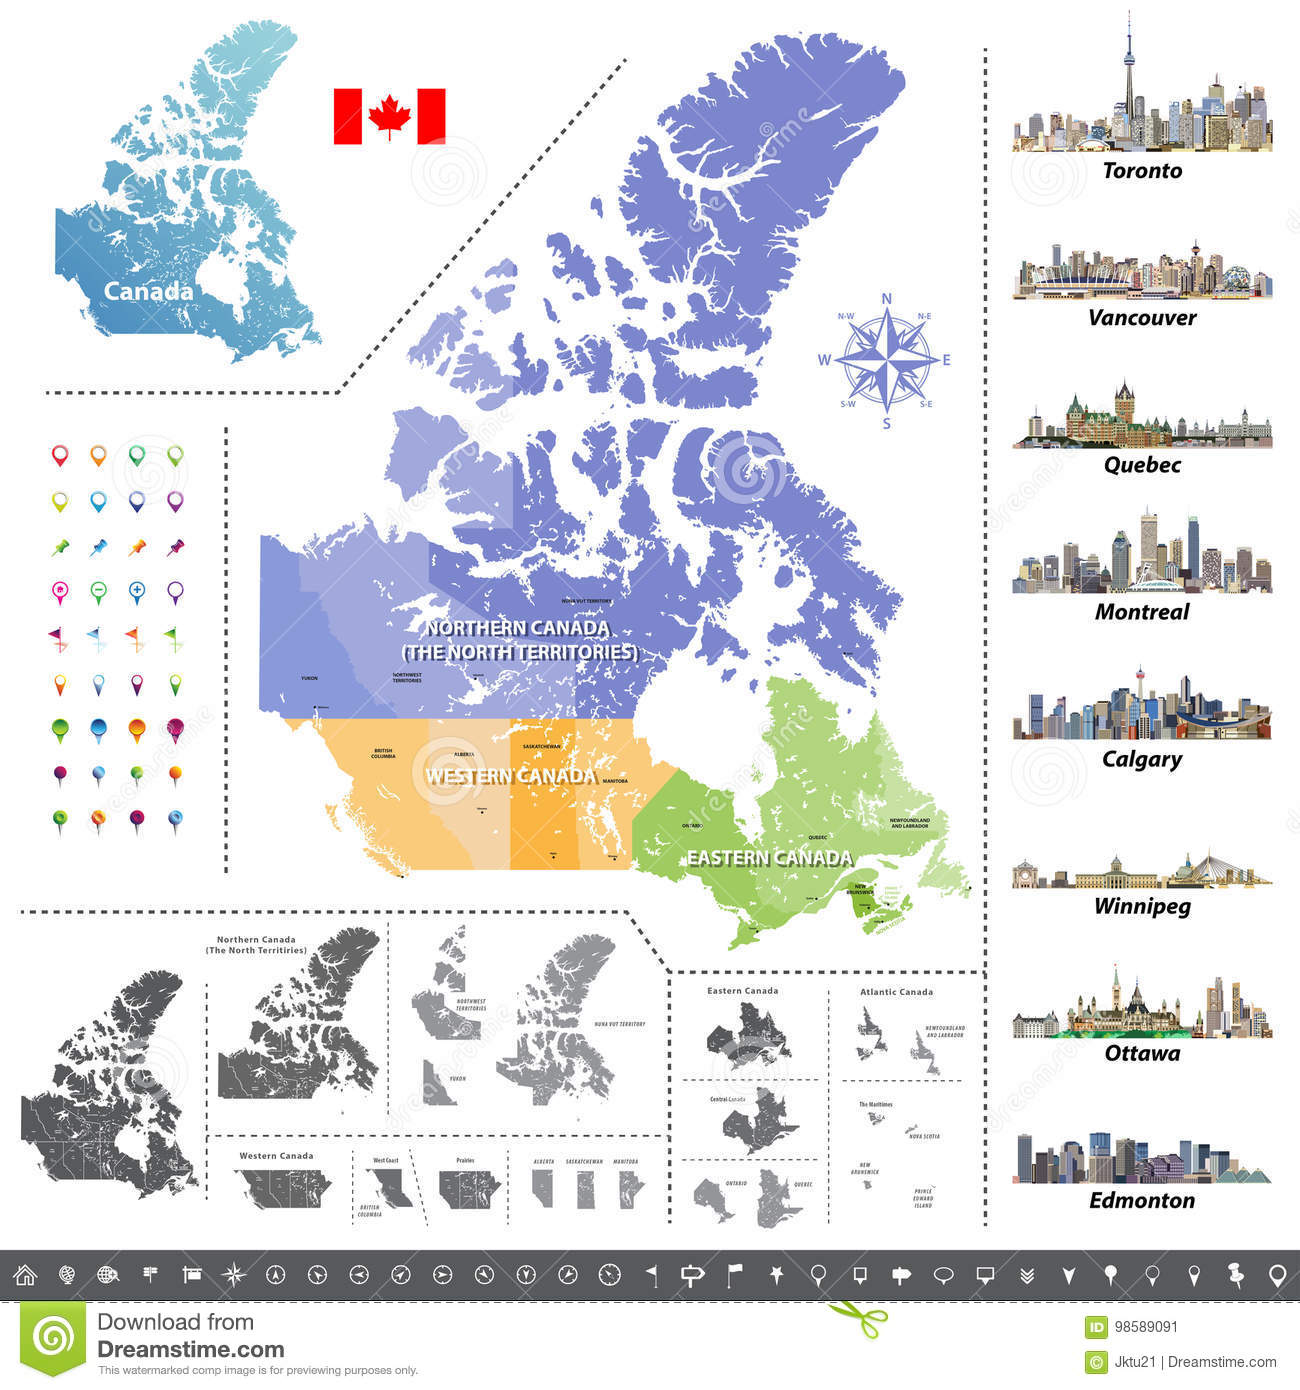 Map Of Canada And Provinces And Territories.Canadian Provinces And Territories Map Colored By Regions Stock